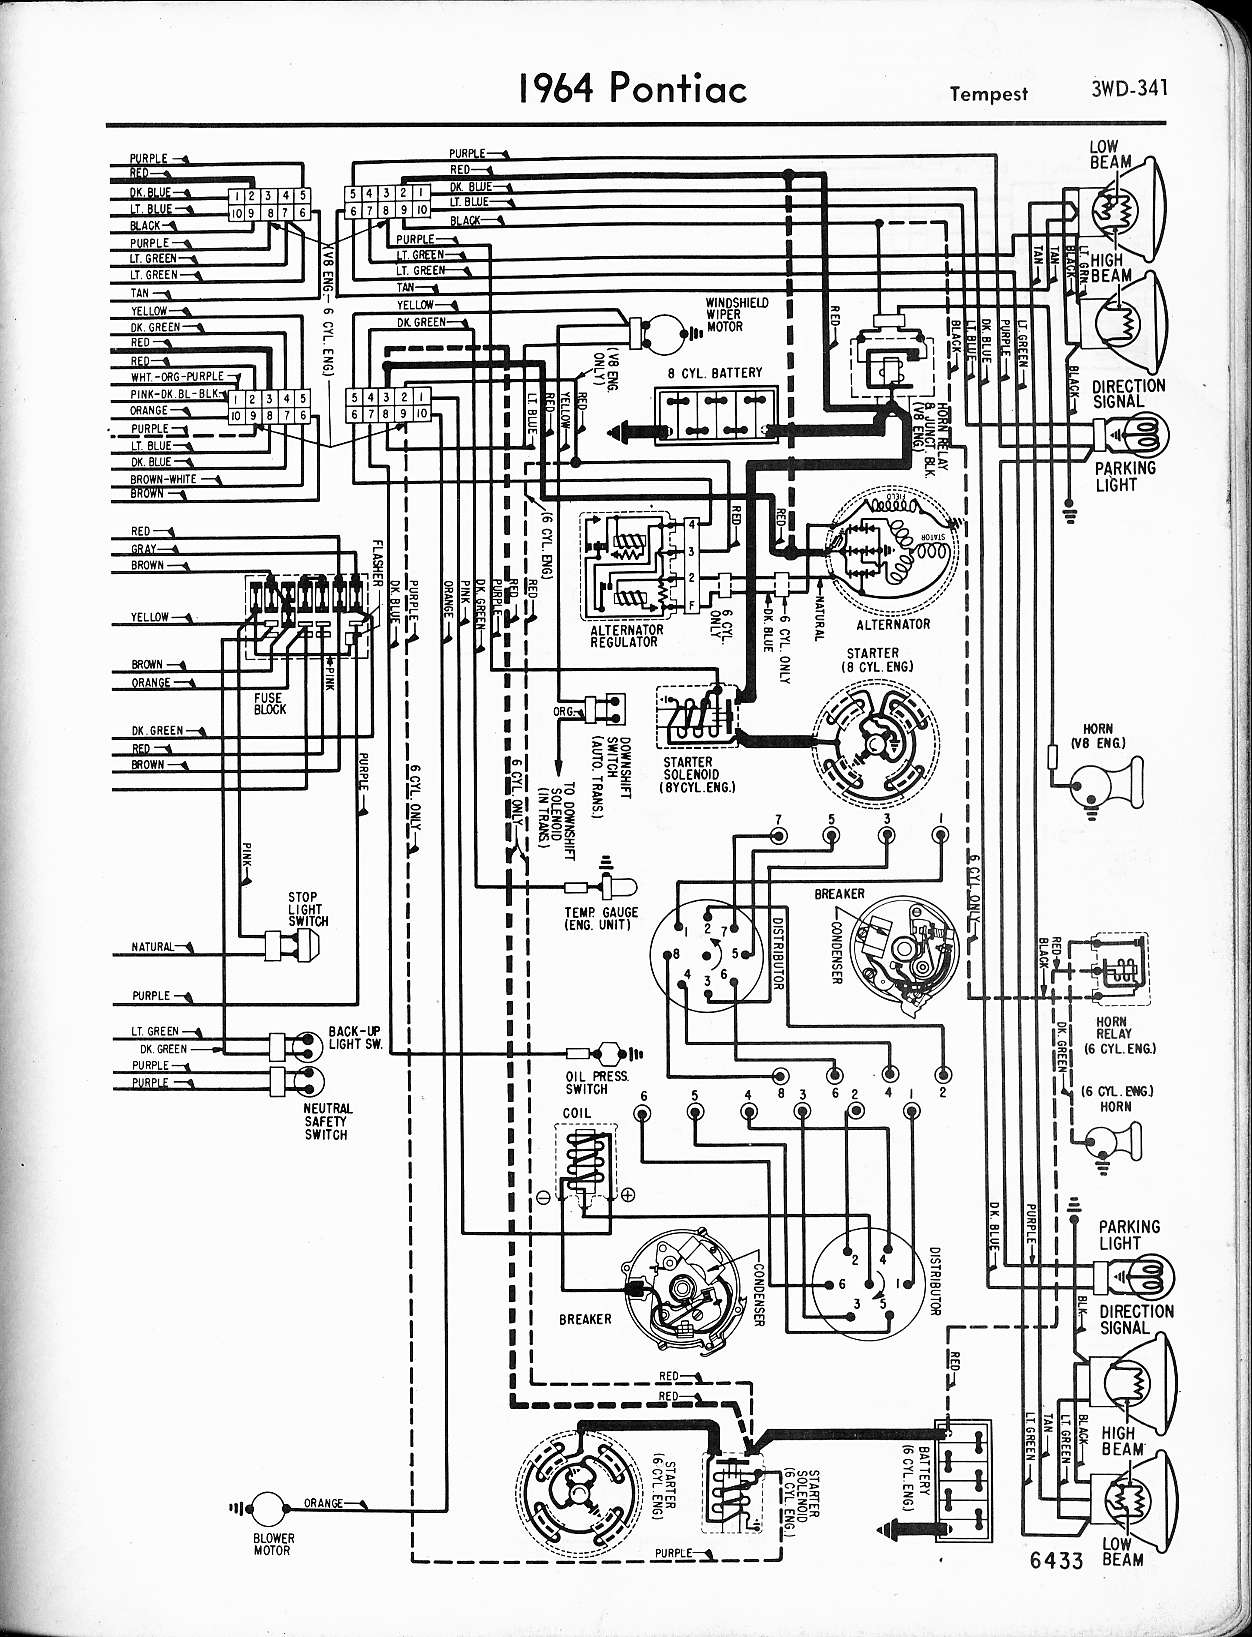 1964 pontiac grand prix wiring diagram schematic diagrams car radio wiring diagram 1963 pontiac catalina wiring diagram schematic wiring diagrams \\u2022 1998 pontiac grand prix dash wiring diagram 1964 pontiac grand prix wiring diagram